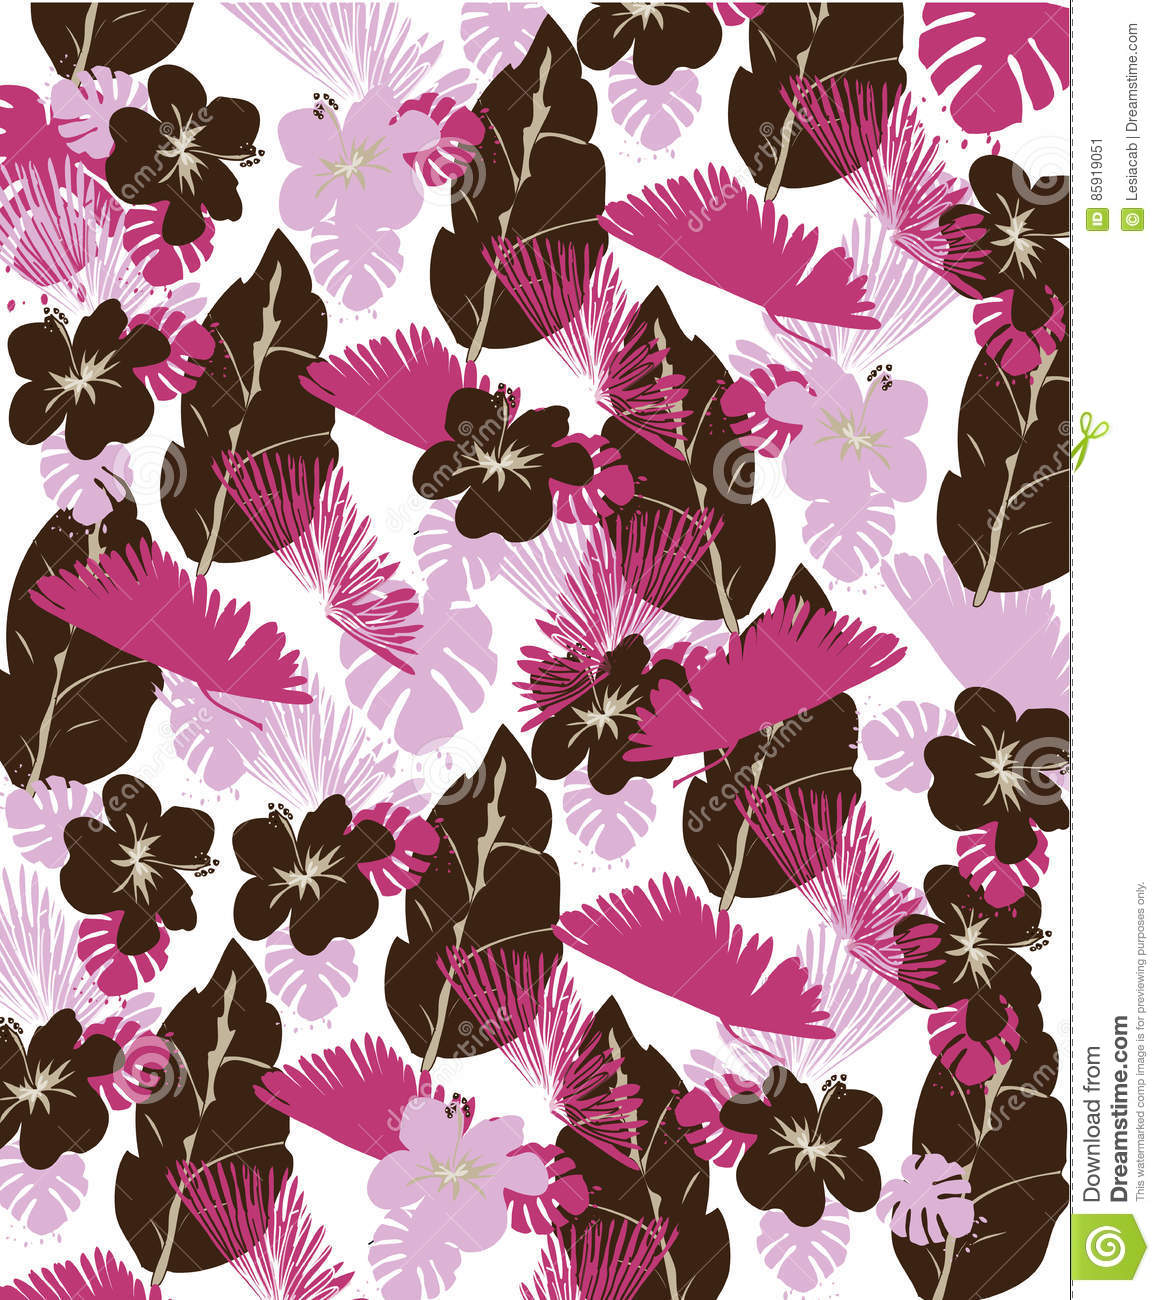 Floral Background With Flowers And Leaves In Brown And Pink Colors